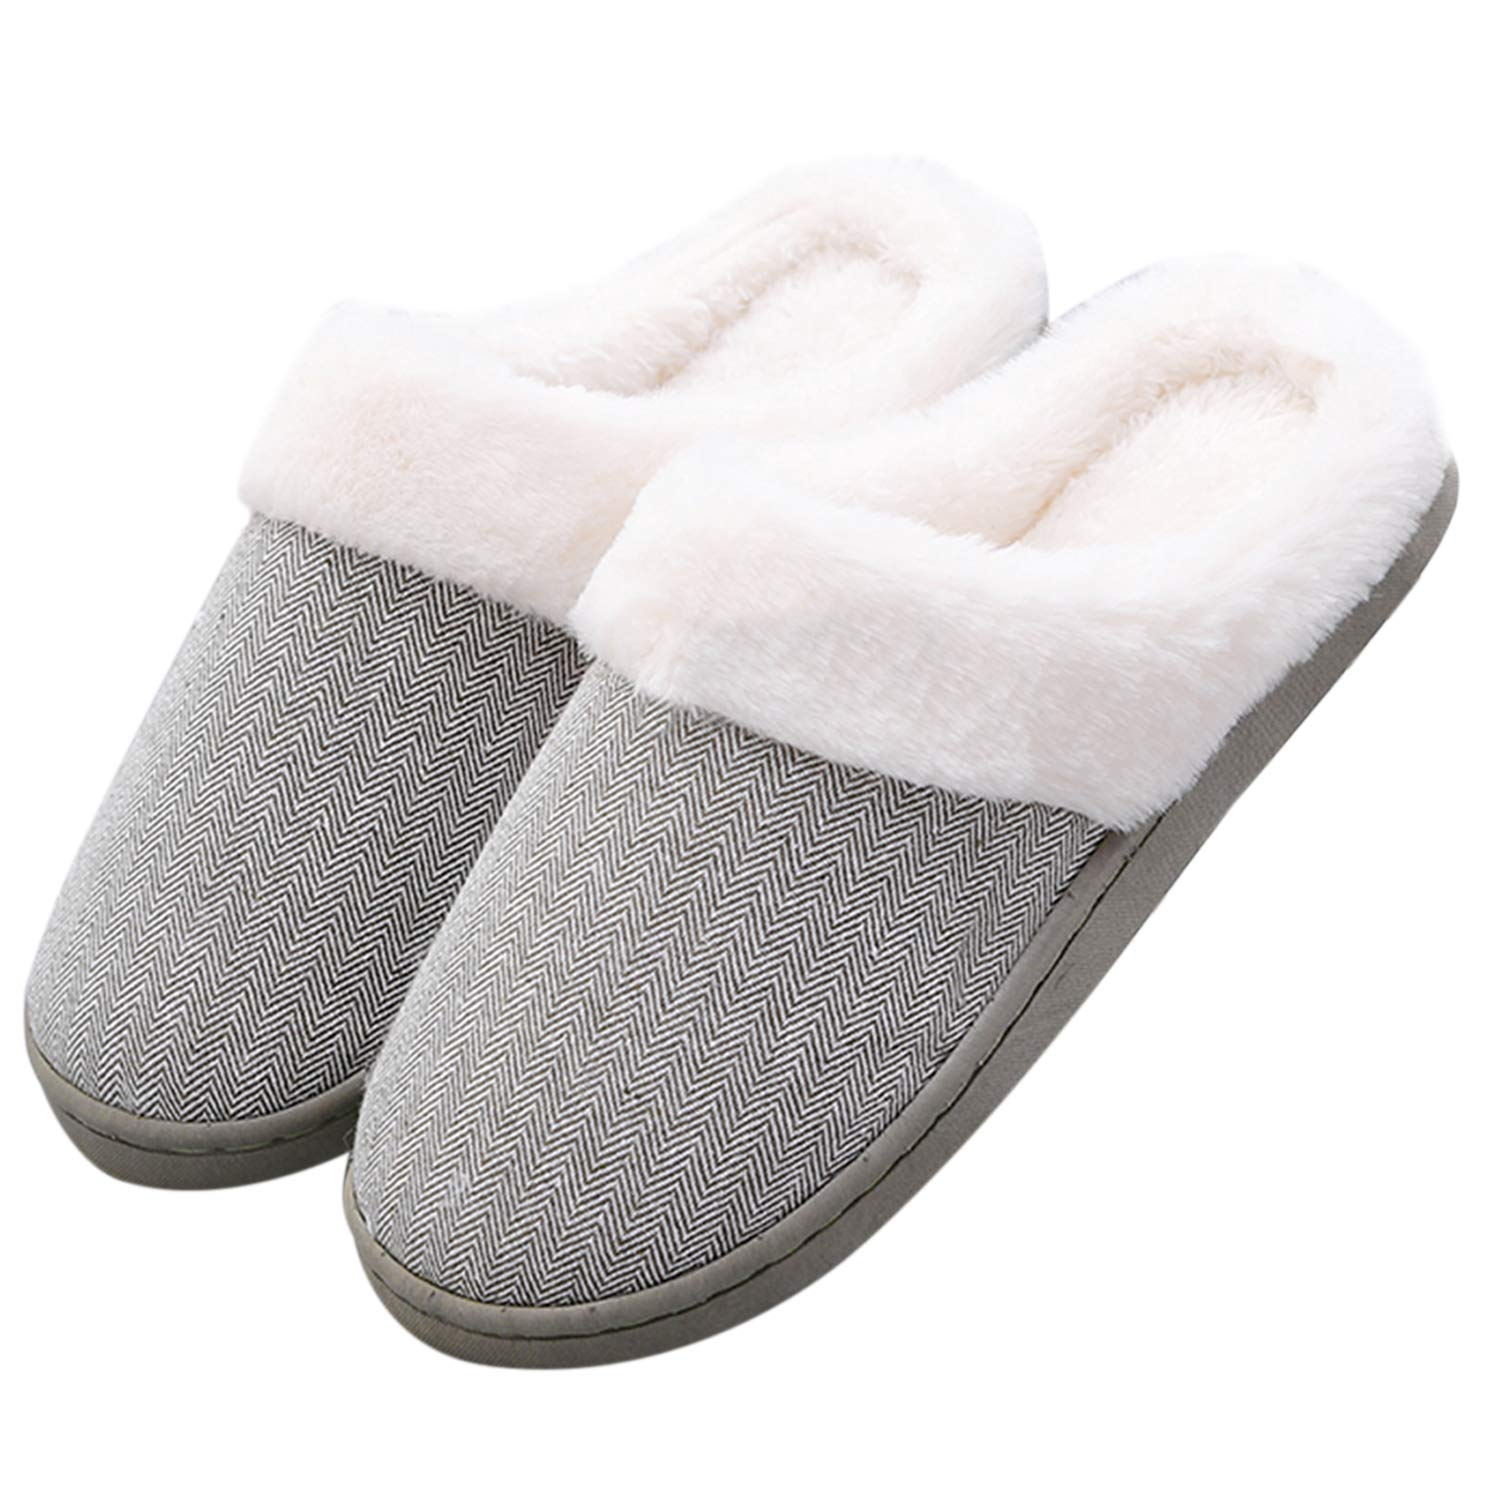 Hawiton Womens/Mens House Slipper Fuzzy Plush Lining Slip On Shoes Anti-Skid Sole for Indoor/Outdoor Winter Light Green by Hawiton